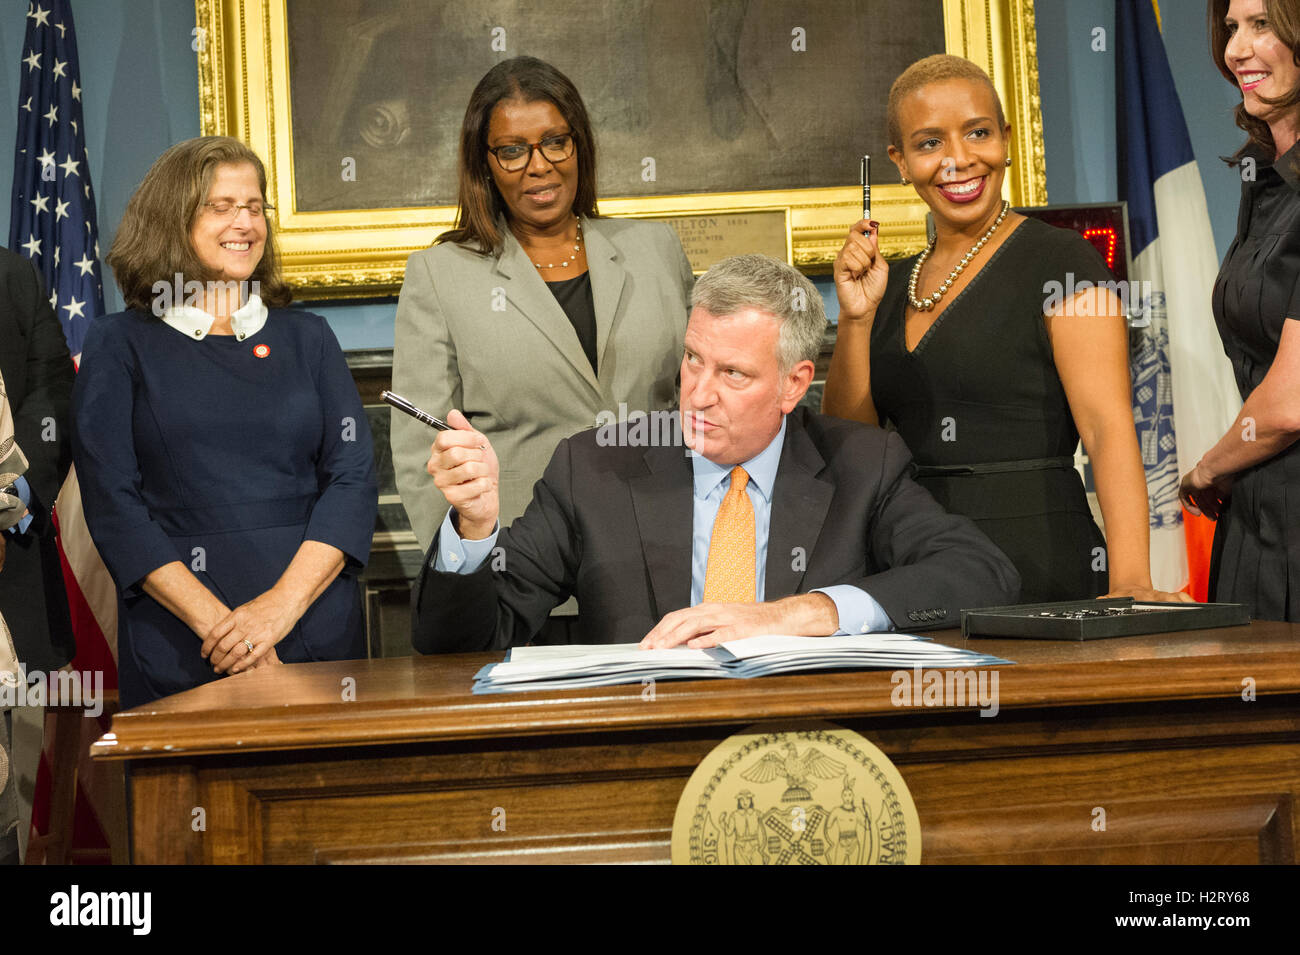 New York Mayor Bill de Blasio, at a bill signing related to increasing accountability and access for the New York's - Stock Image